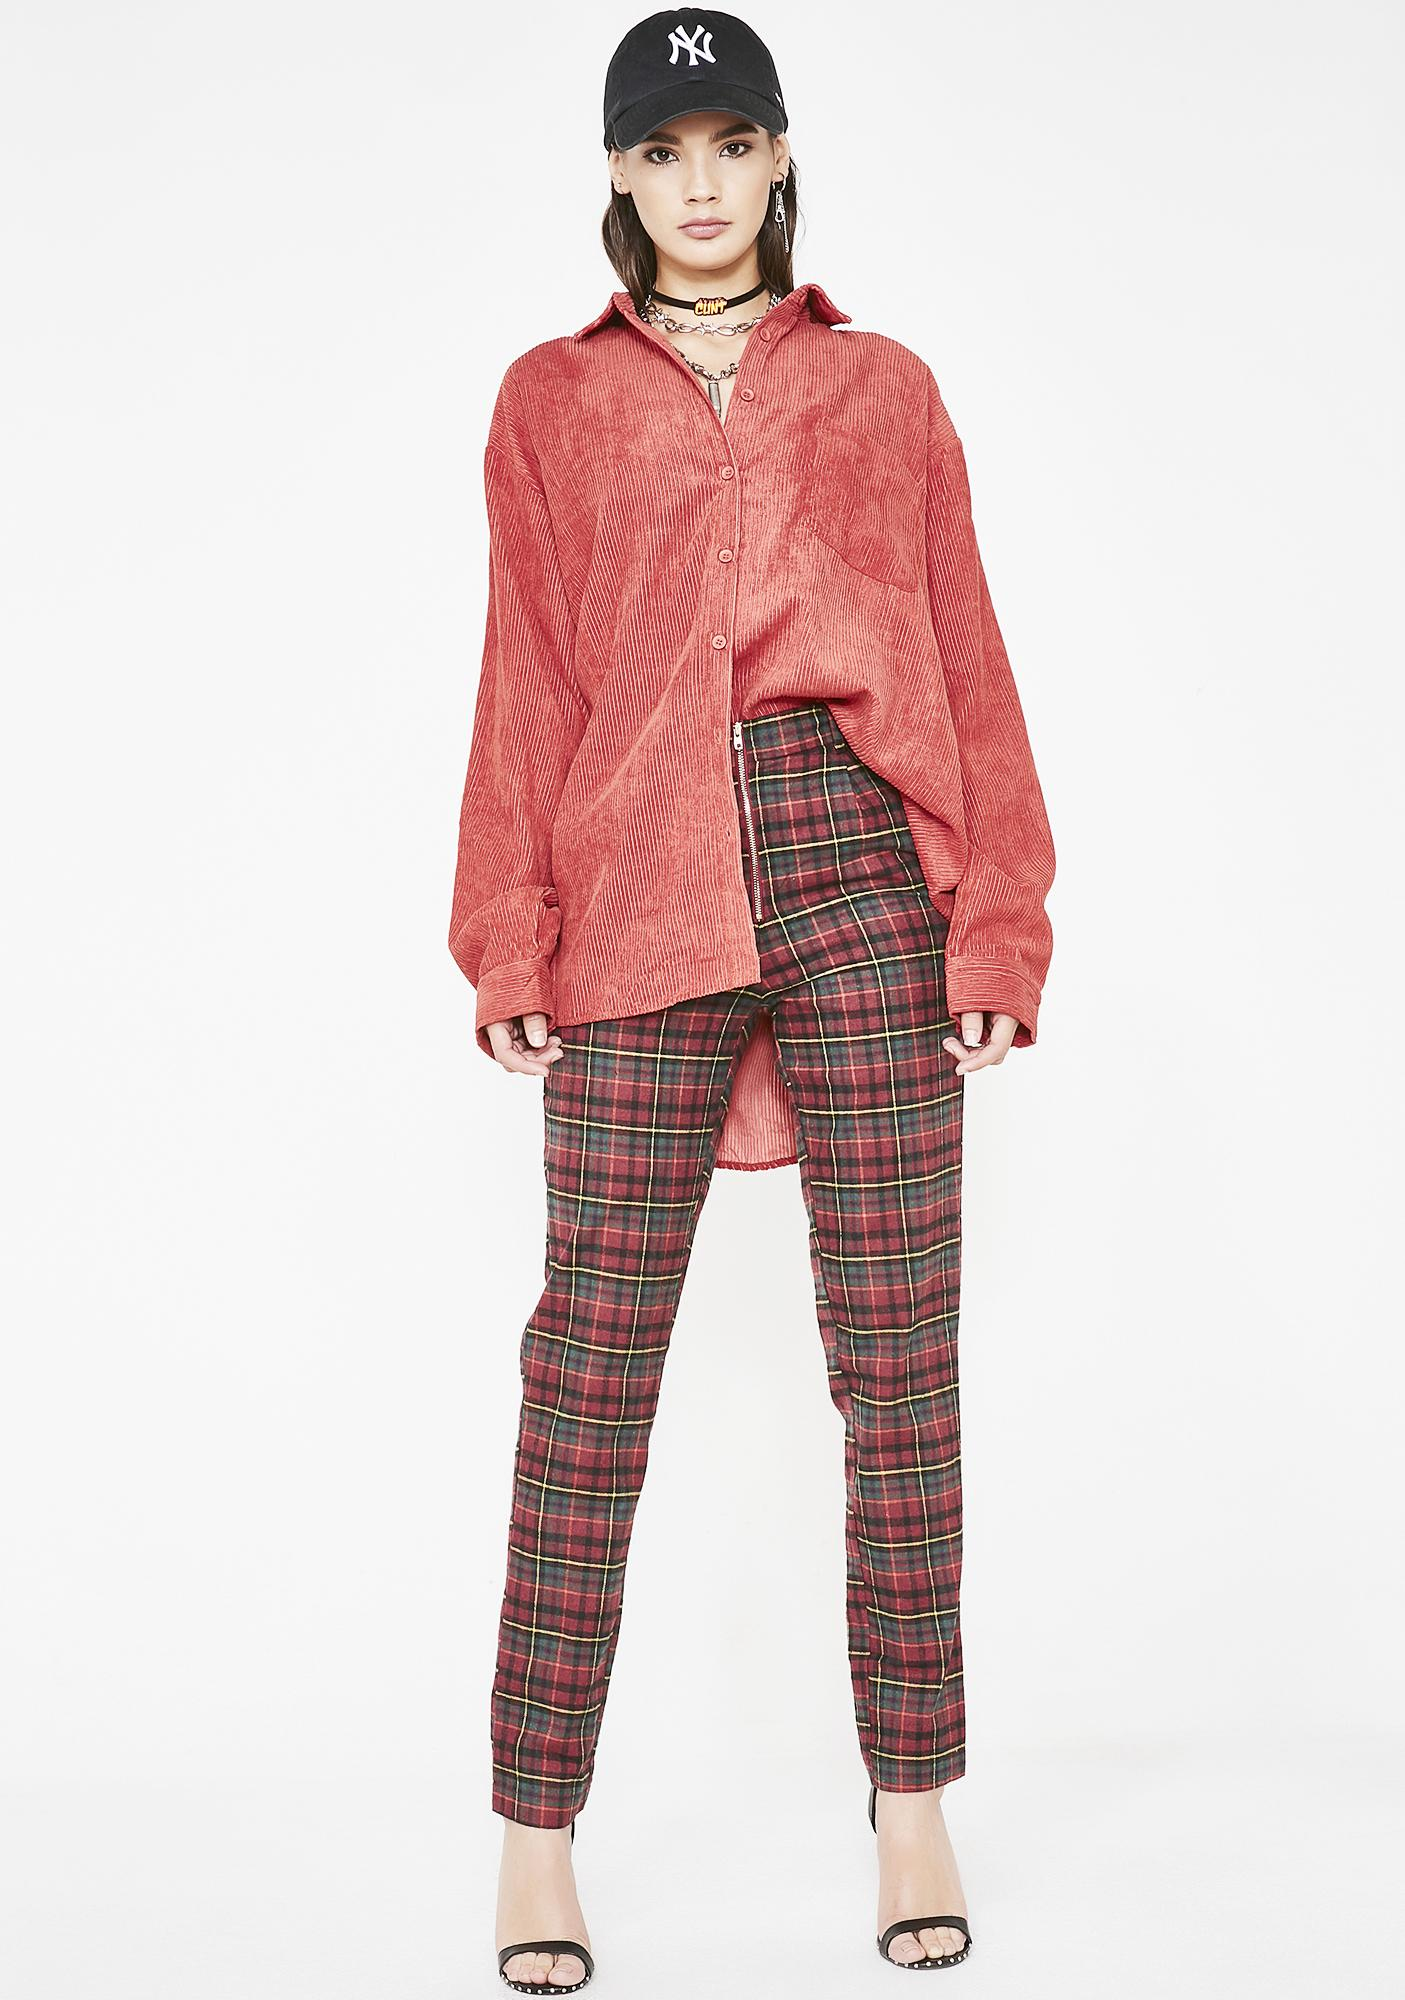 Payback Plaid Trousers